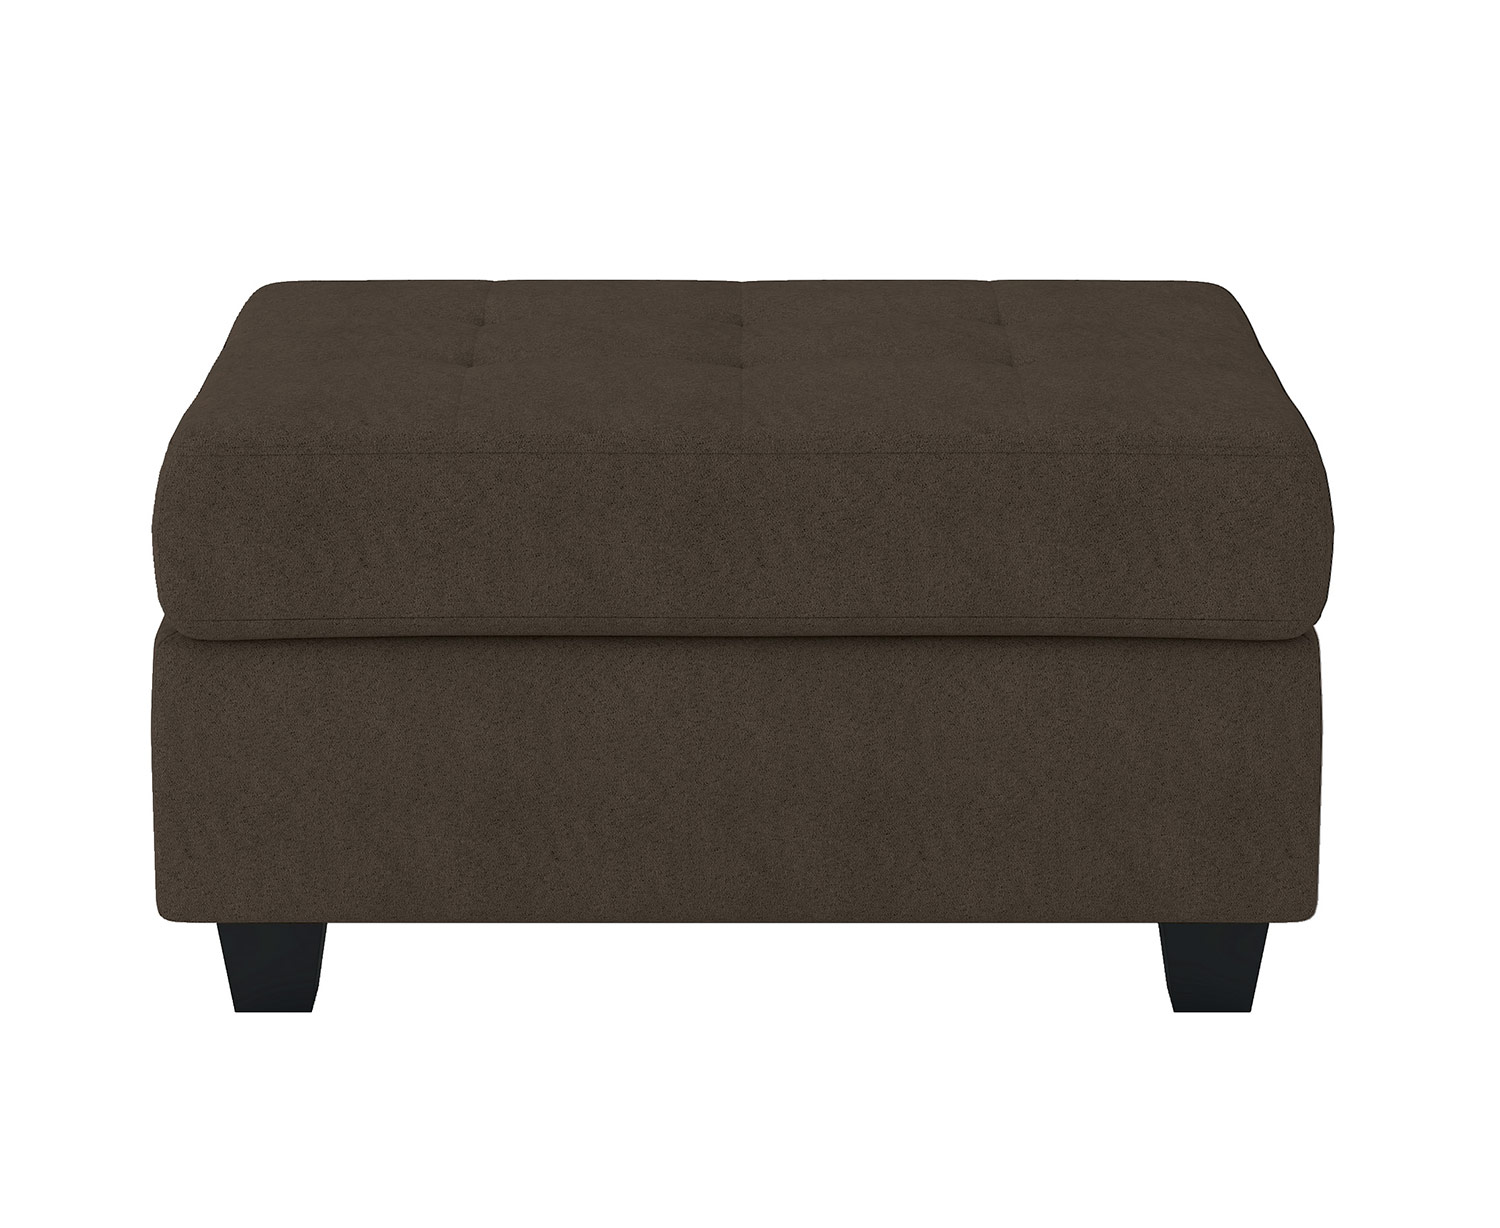 Homelegance Maston Storage Ottoman - Chocolate